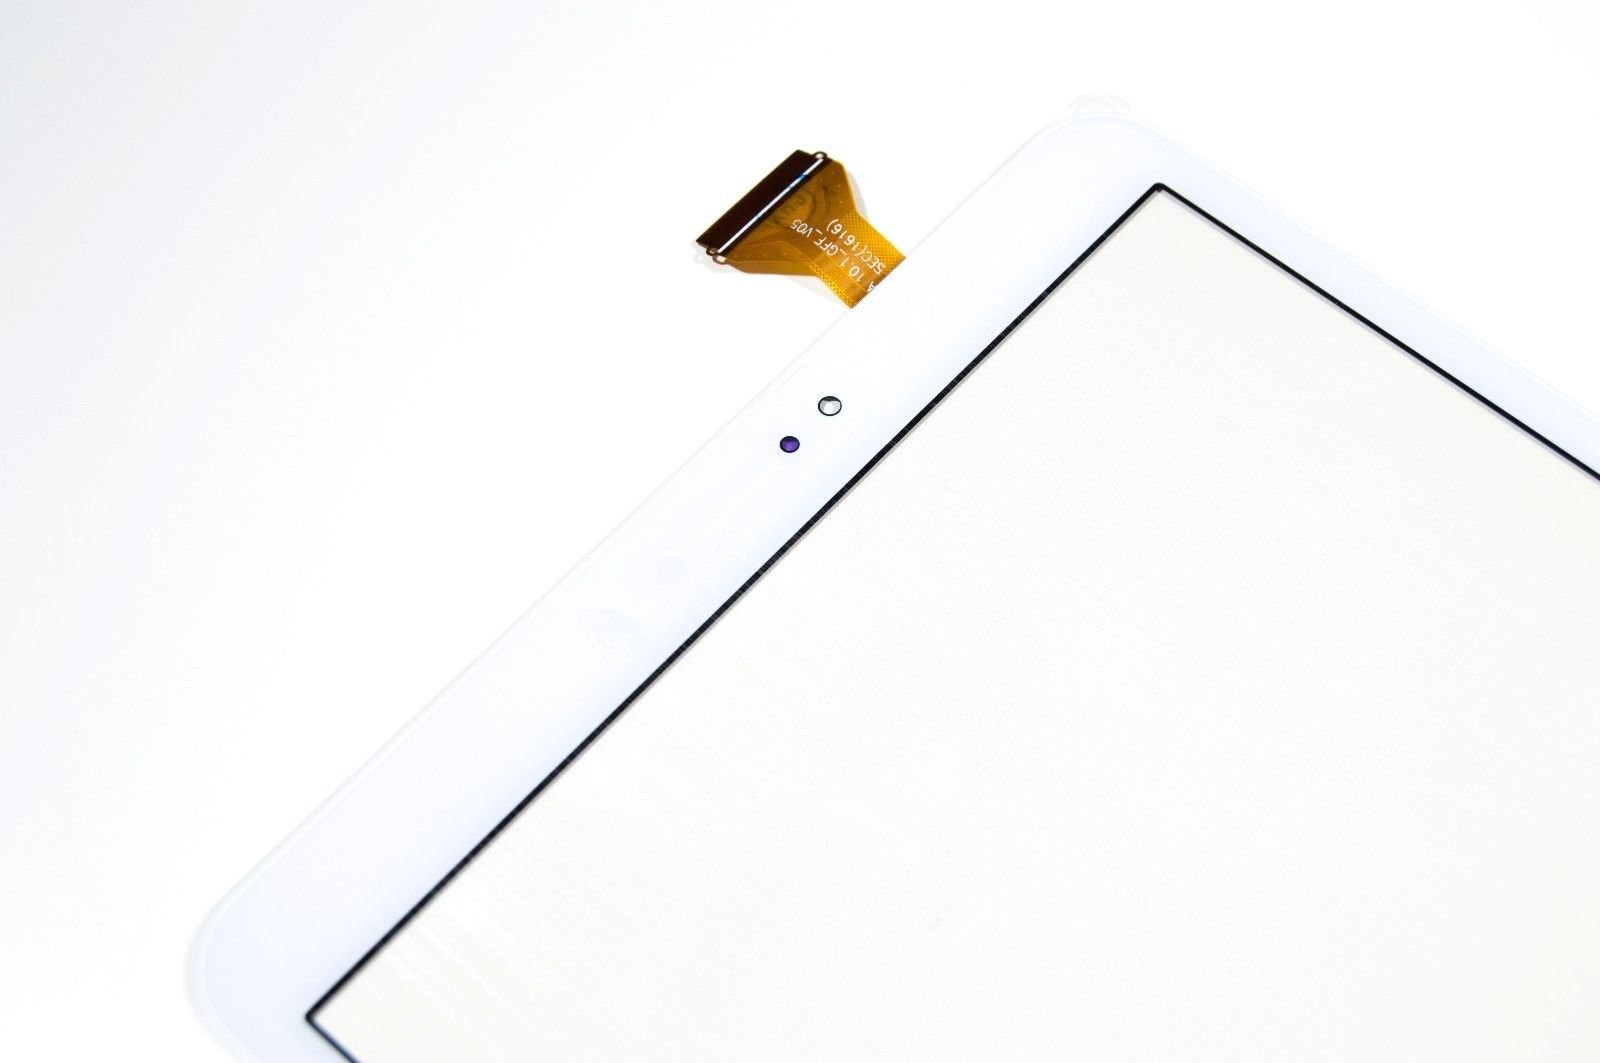 Touch Screen Digitizer Replacement for Samsung Galaxy Tab A 10.1 SM-T580 (White) by XR (Image #4)